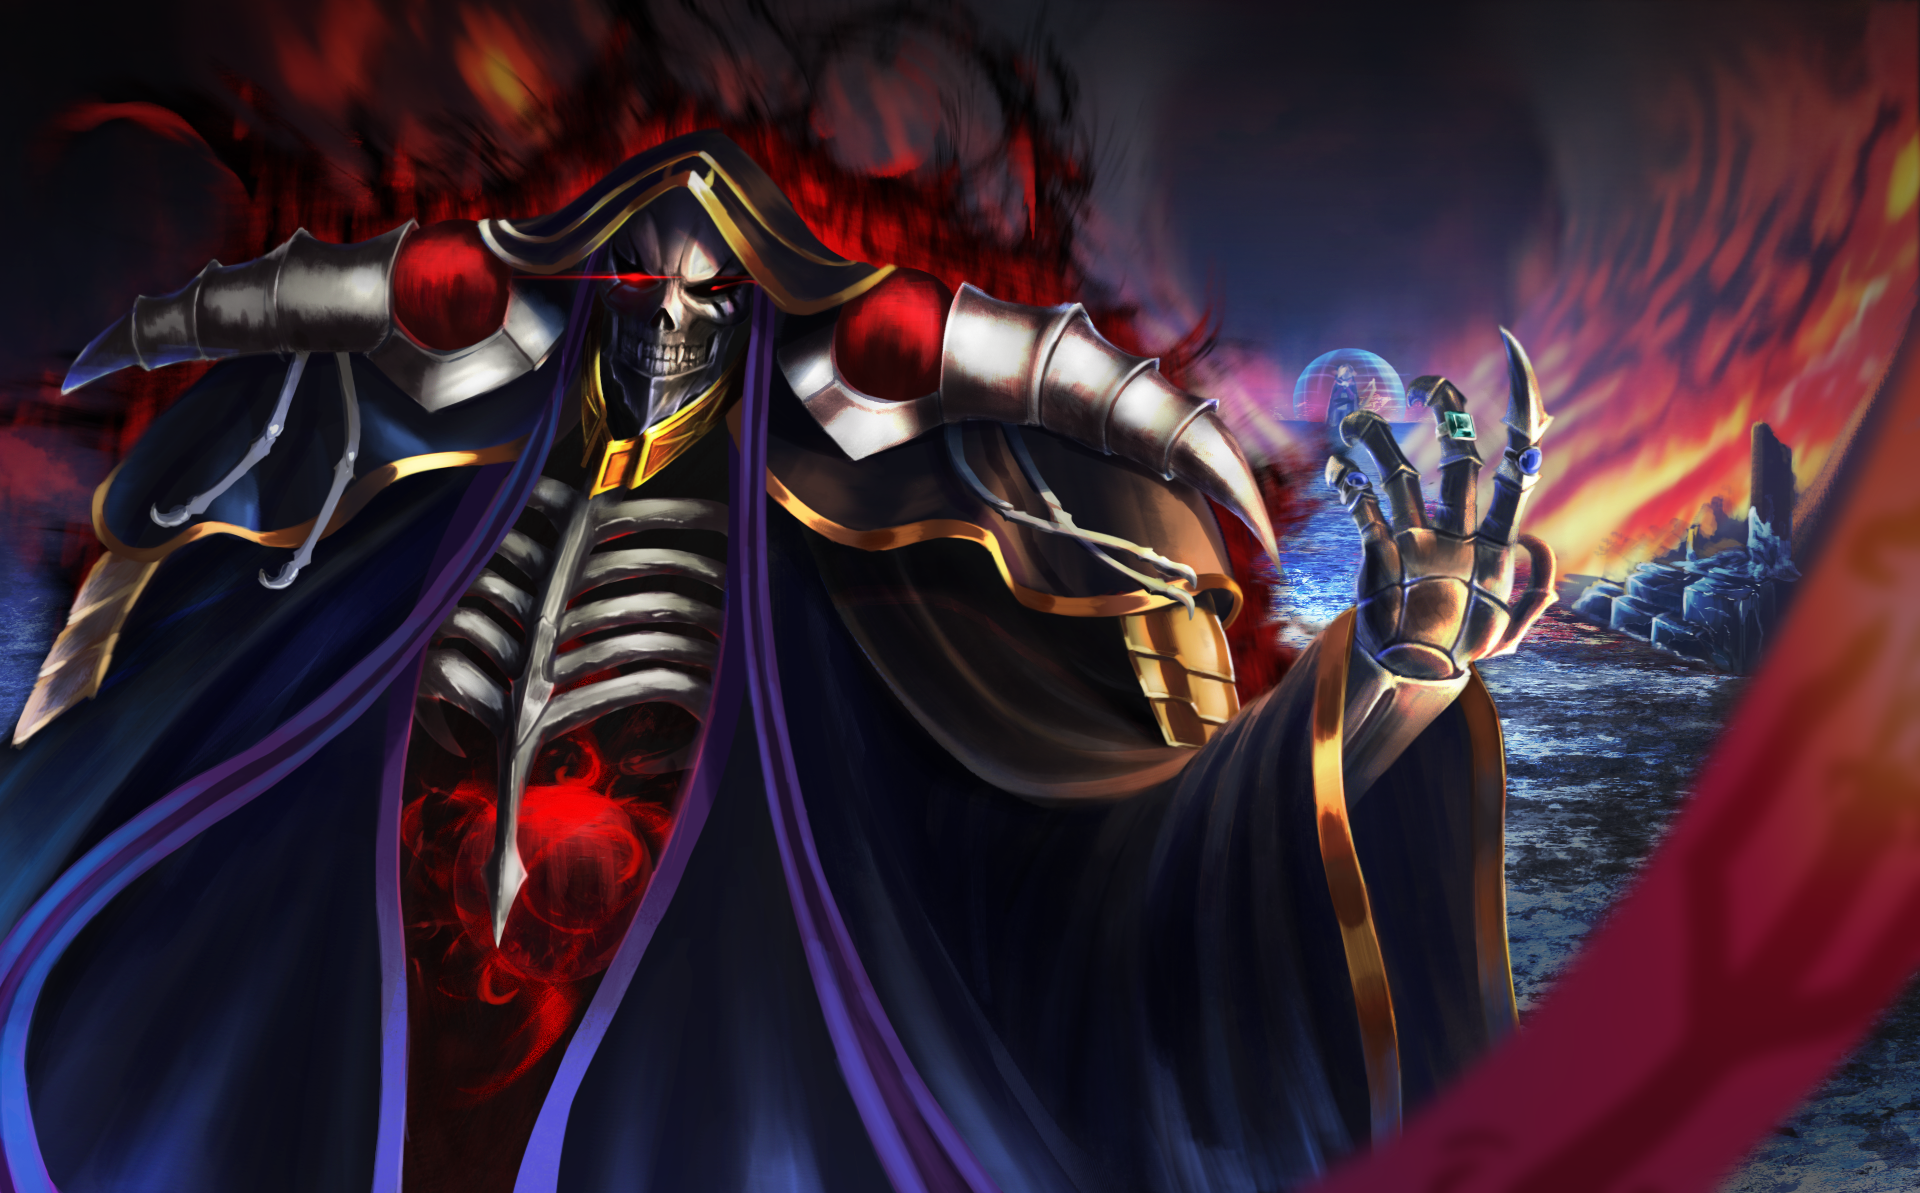 Overlord Hd Wallpaper Background Image 1920x1193 Id 955519 Wallpaper Abyss